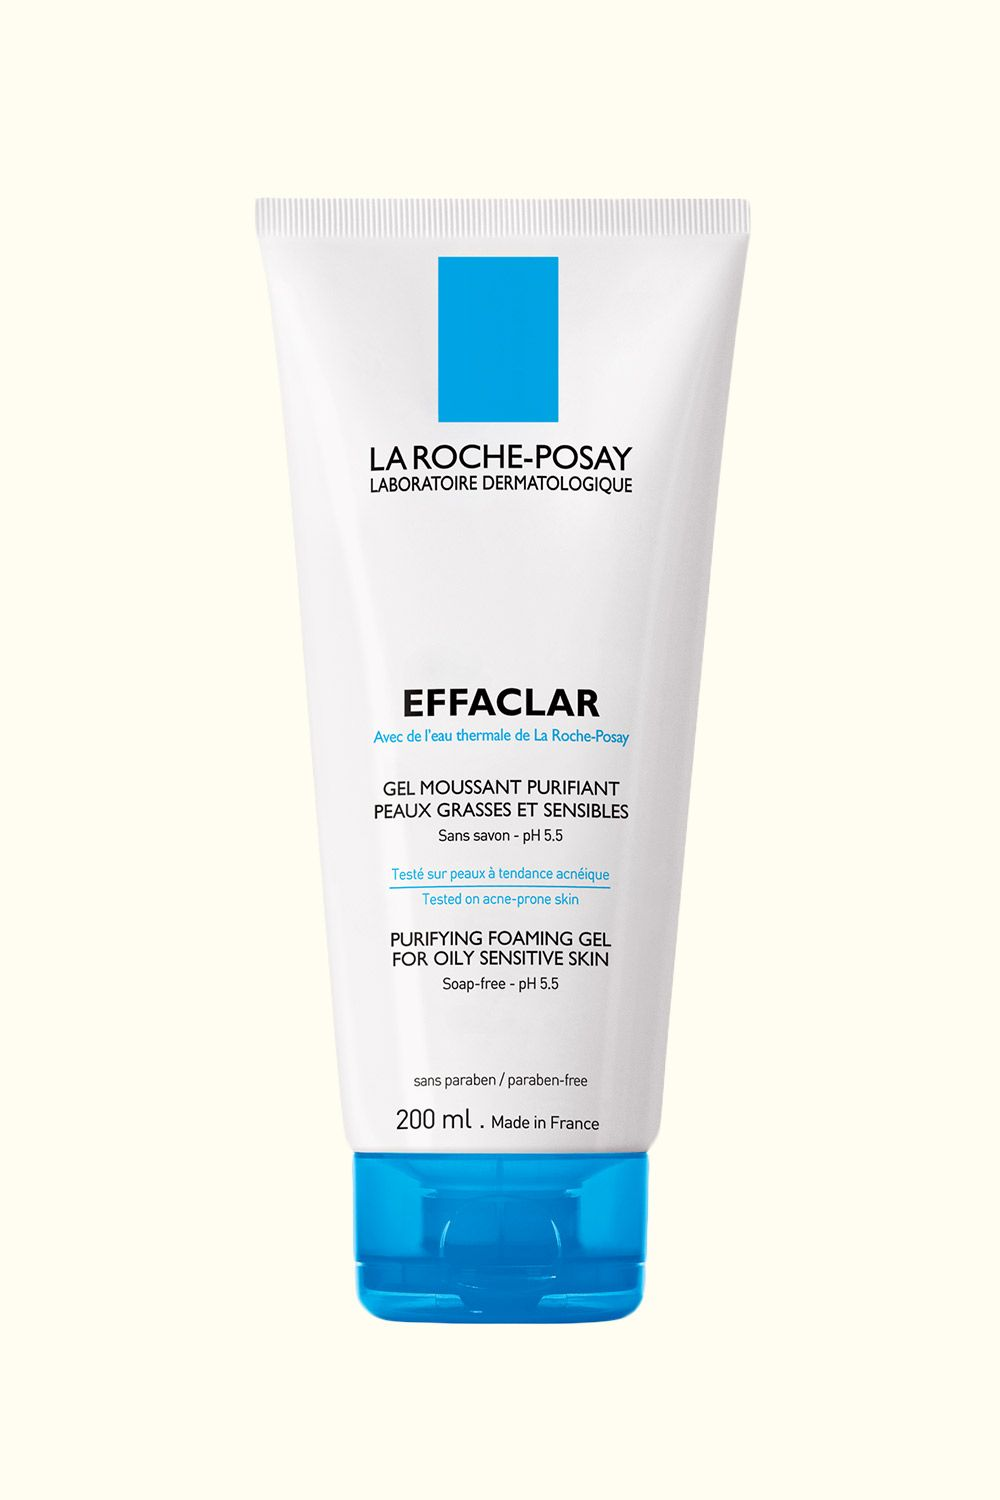 """<p>This thin gel cleanser is super gentle, yet effective for soothing irritation and clearing up breakouts without drying out the skin. Not to mention, it will get rid of every last remnant of makeup.</p><p>La Roche-Posay Effaclar Purifying Foaming Gel Cleanser, $14.99; <a href=""""http://bit.ly/1V81Exf"""" target=""""_blank"""">amazon.com</a>.<br></p>"""